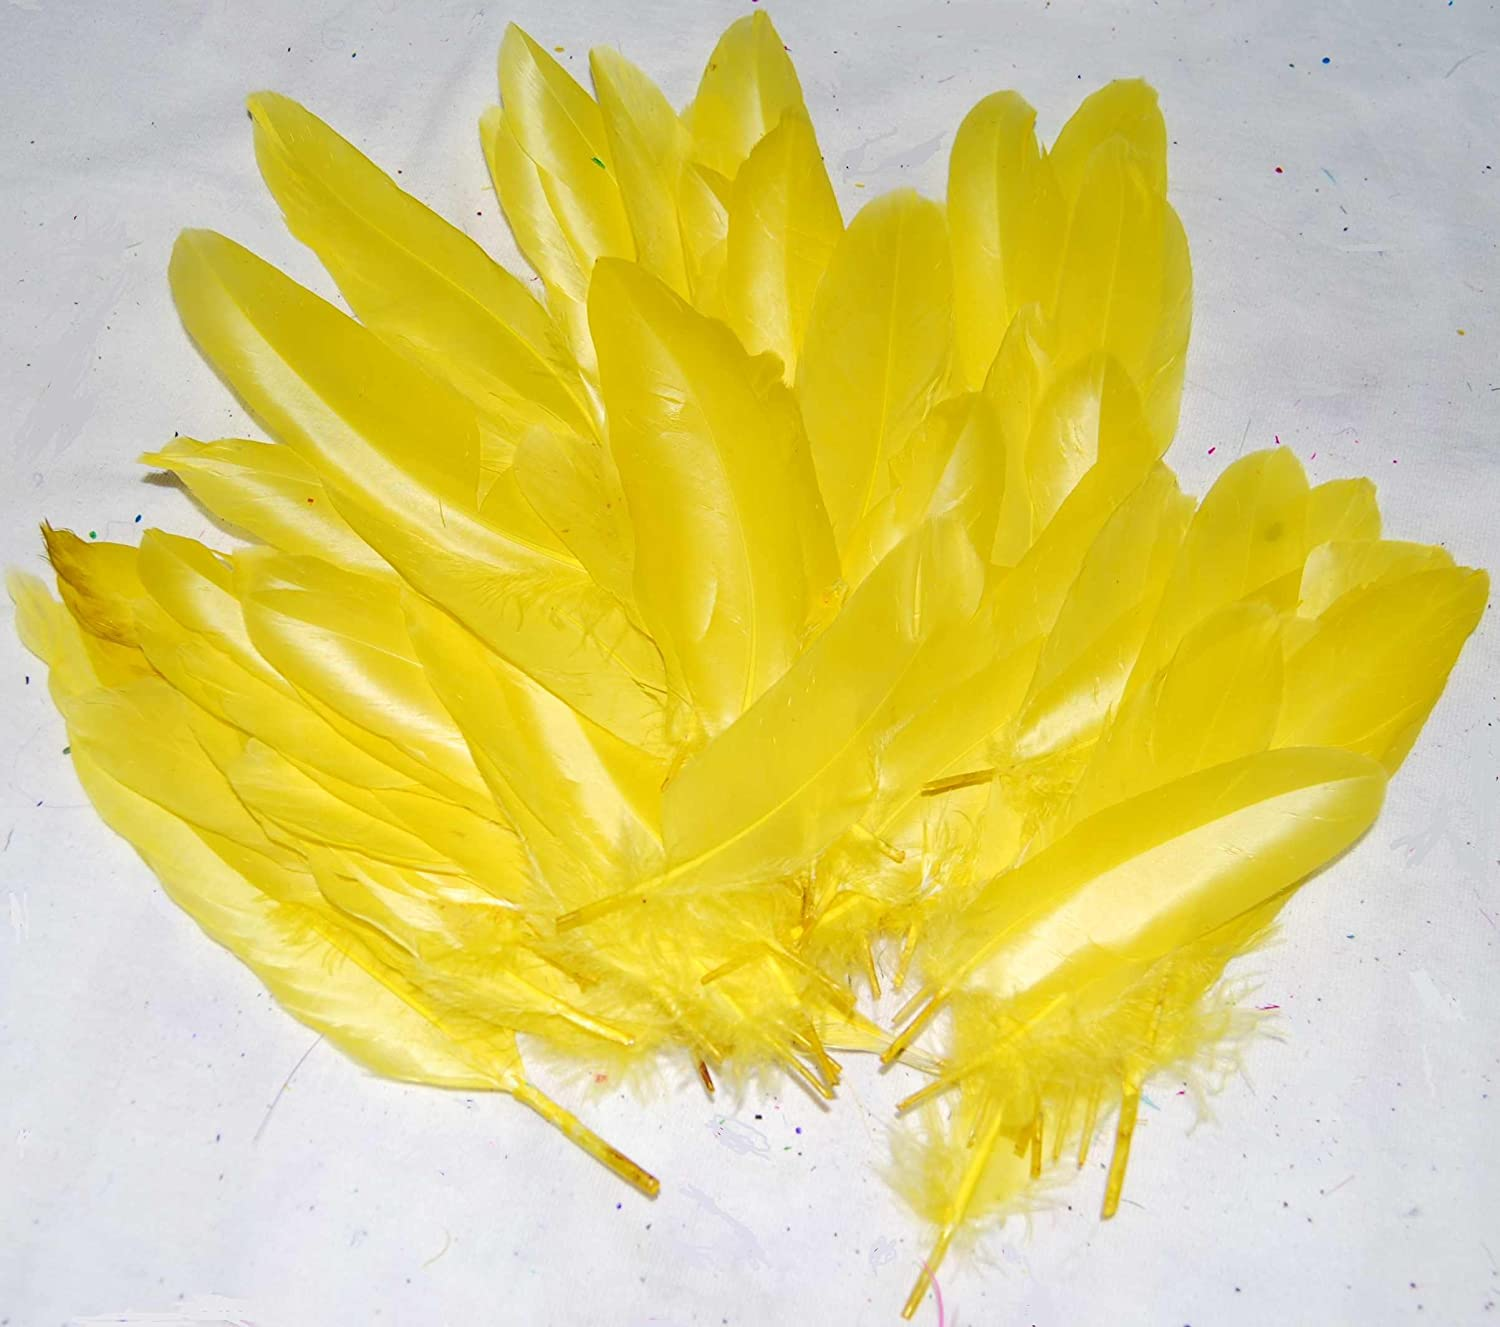 Average of 100 Feathers in Total For Scrapbooking and Crafting Bright Yellow 2 Packs Quill Craft Feathers